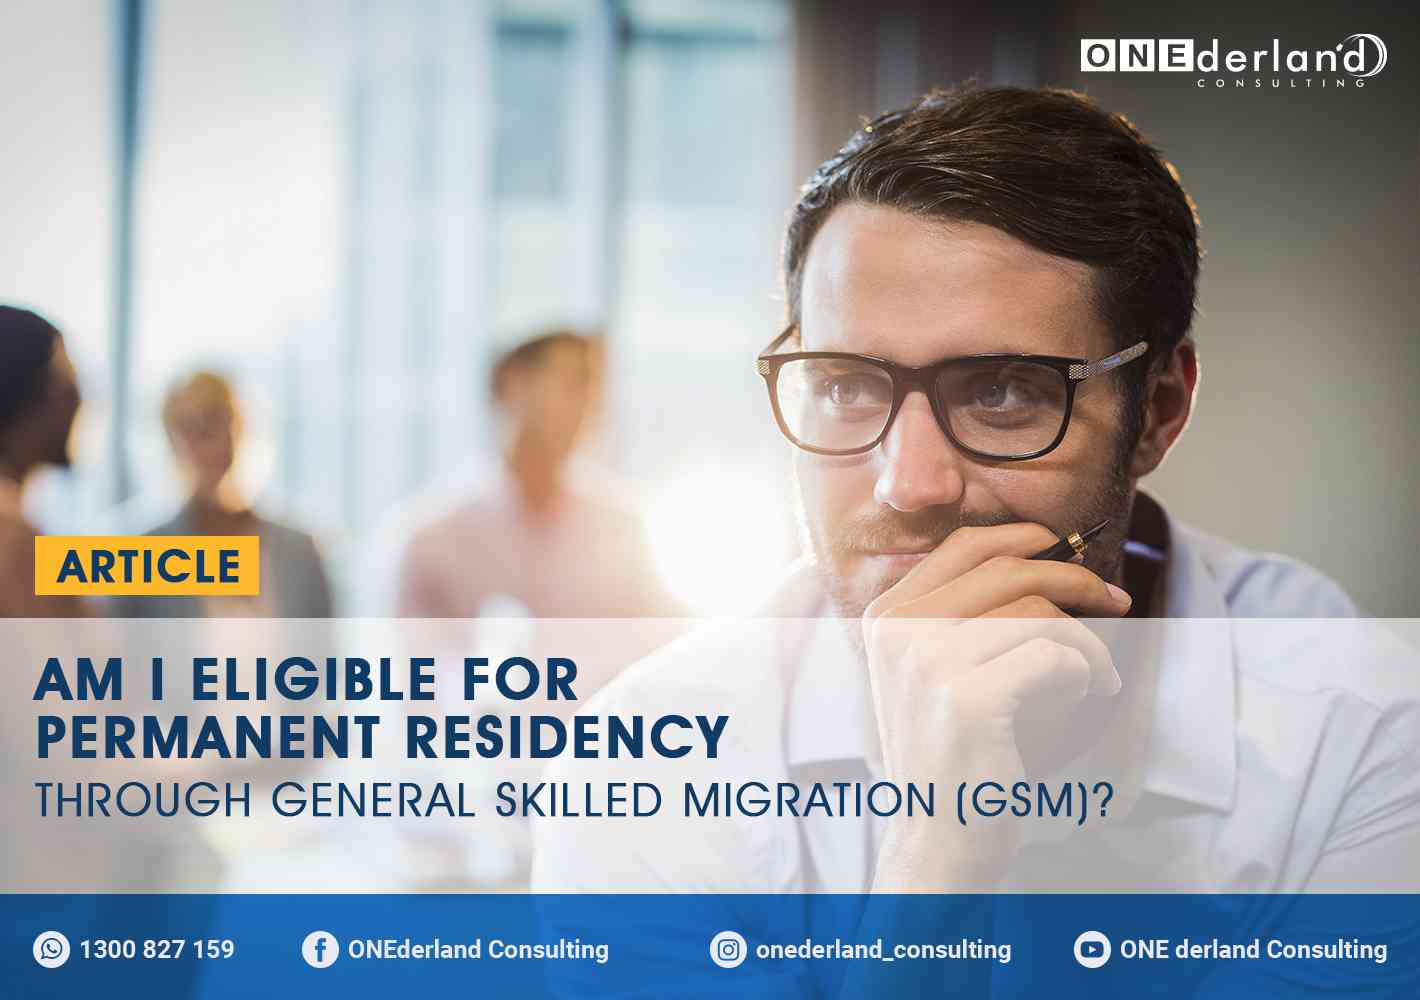 Am I Eligible For Permanent Residency Through General Skilled Migration (GSM)?